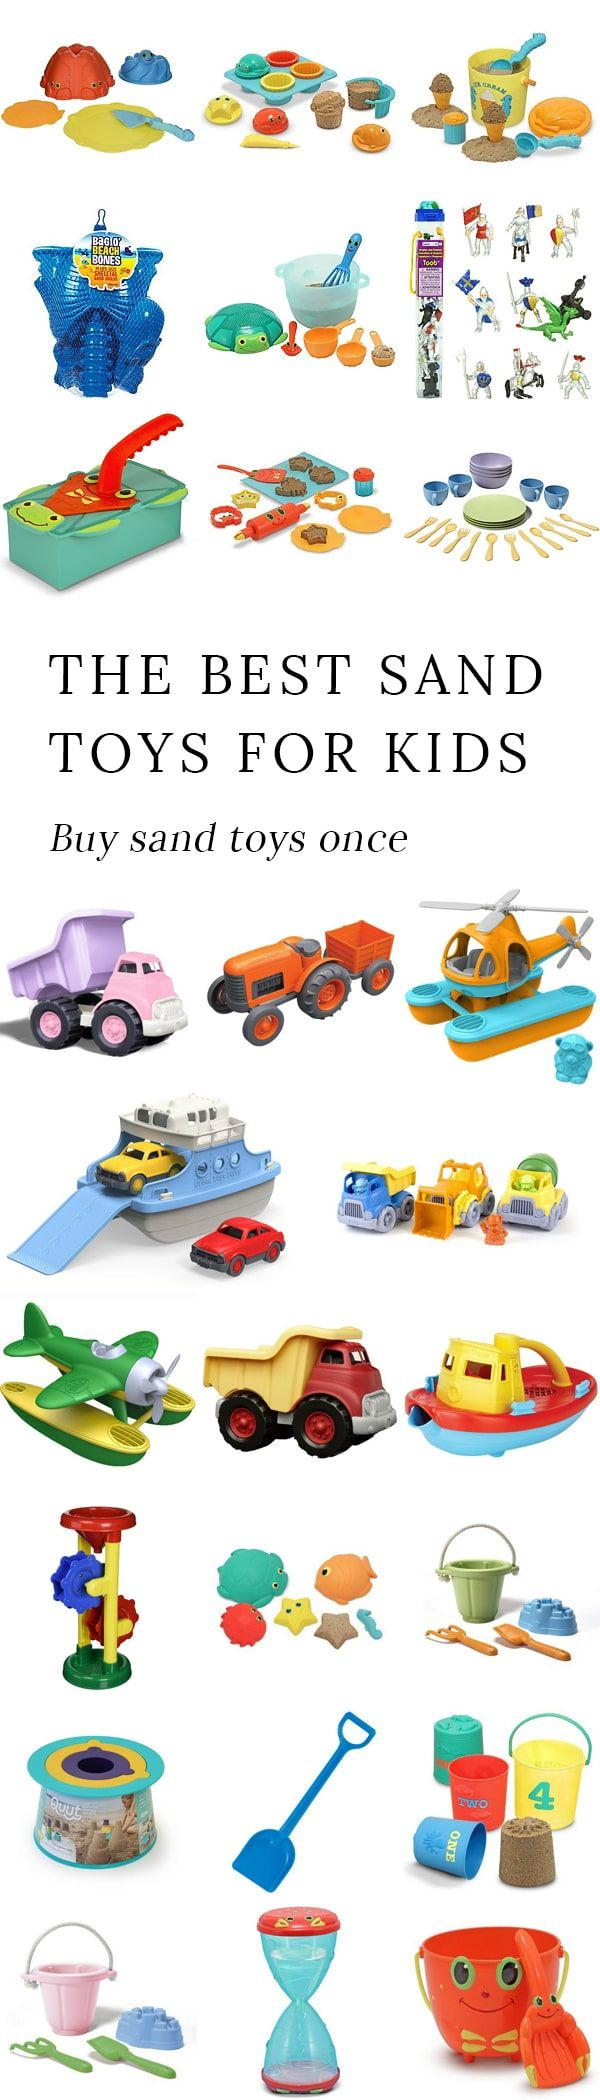 Purchasing high quality sand toys for kids once saves money and prevents pounds of worthless, broken plastic from entering the landfill. via @https://www.pinterest.com/fireflymudpie/